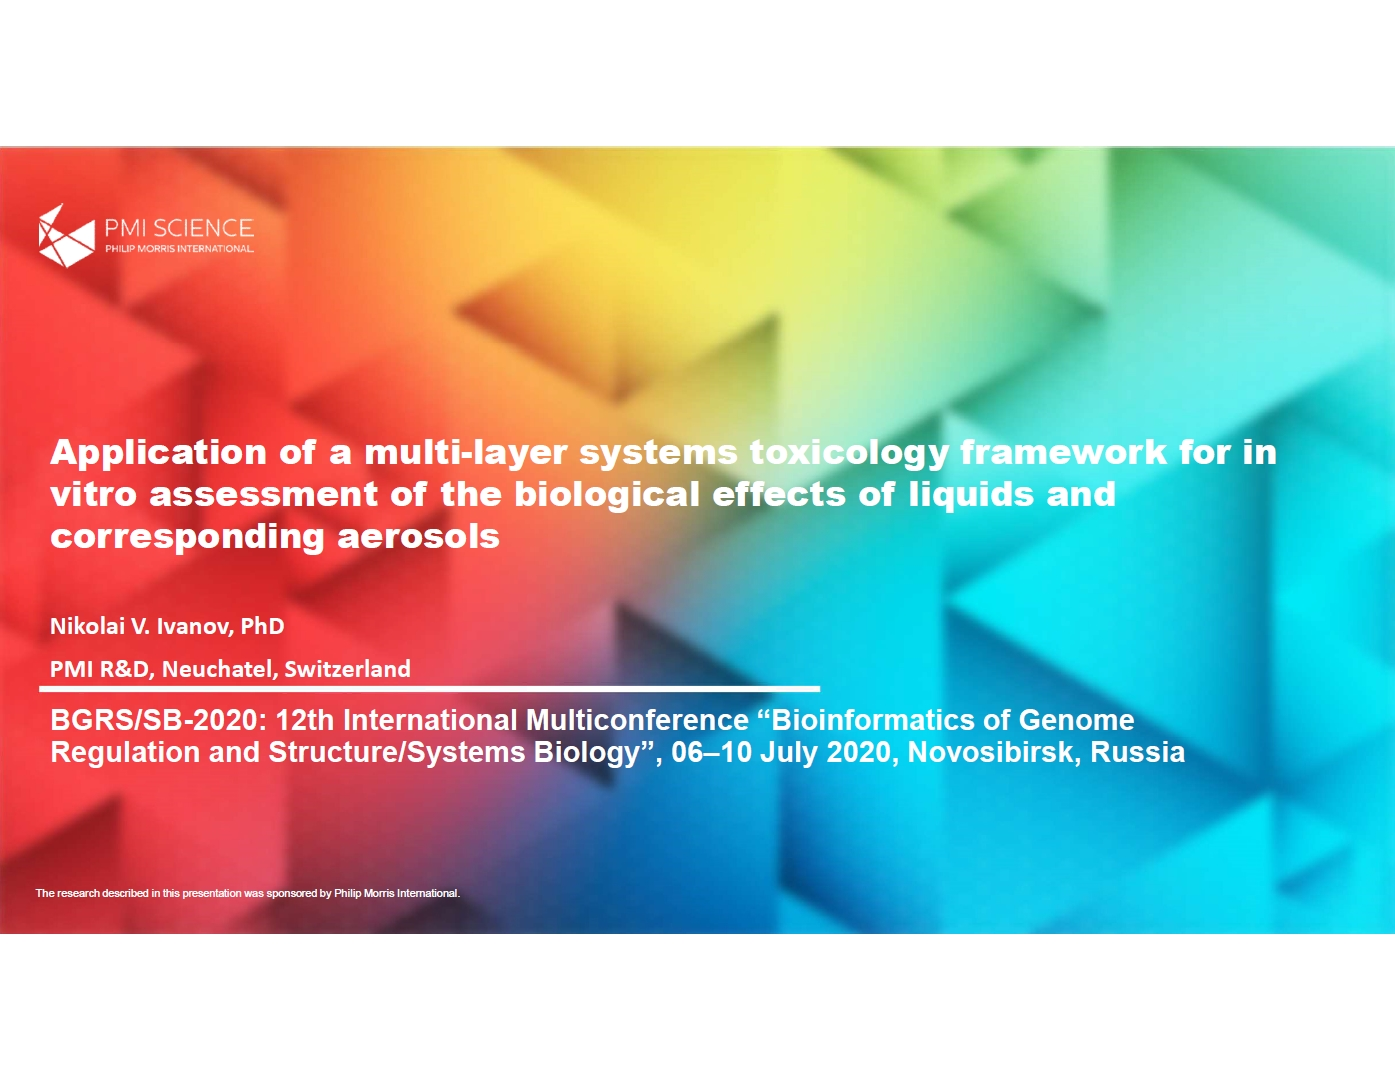 Application of a multi-layer systems toxicology framework for in vitro assessment of the biological effects of liquids and corresponding aerosols